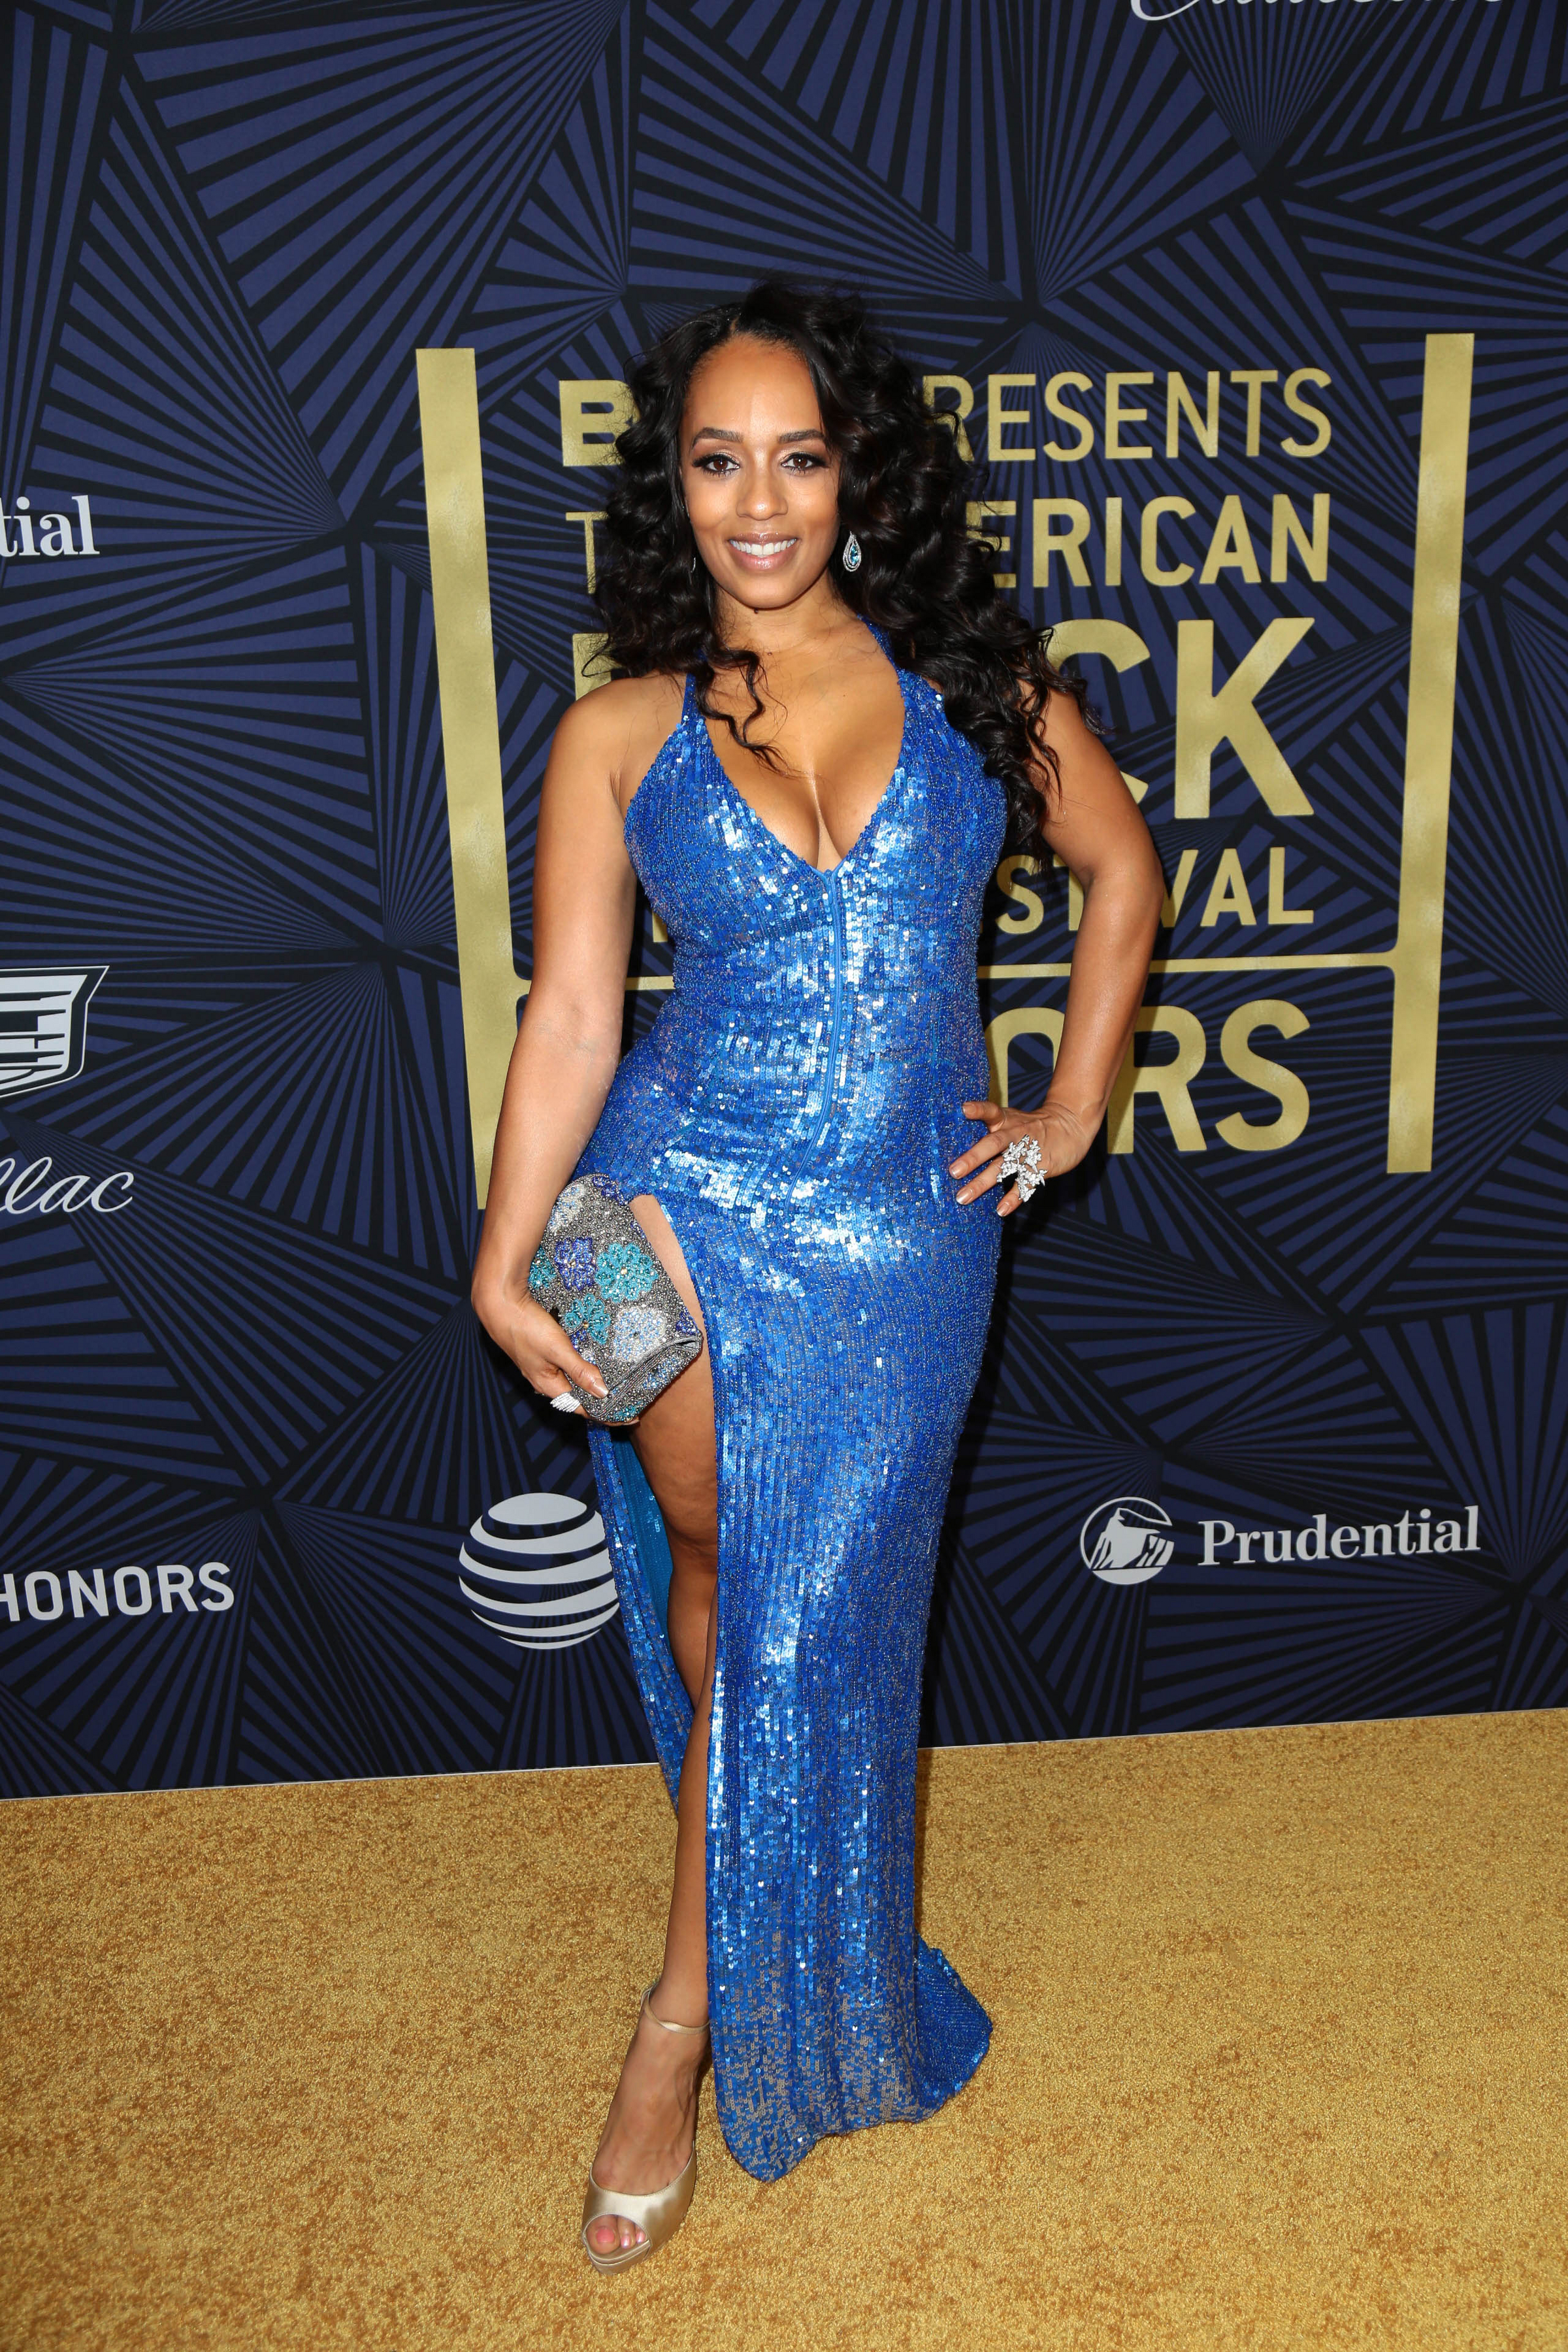 braless Images Melyssa Ford naked photo 2017